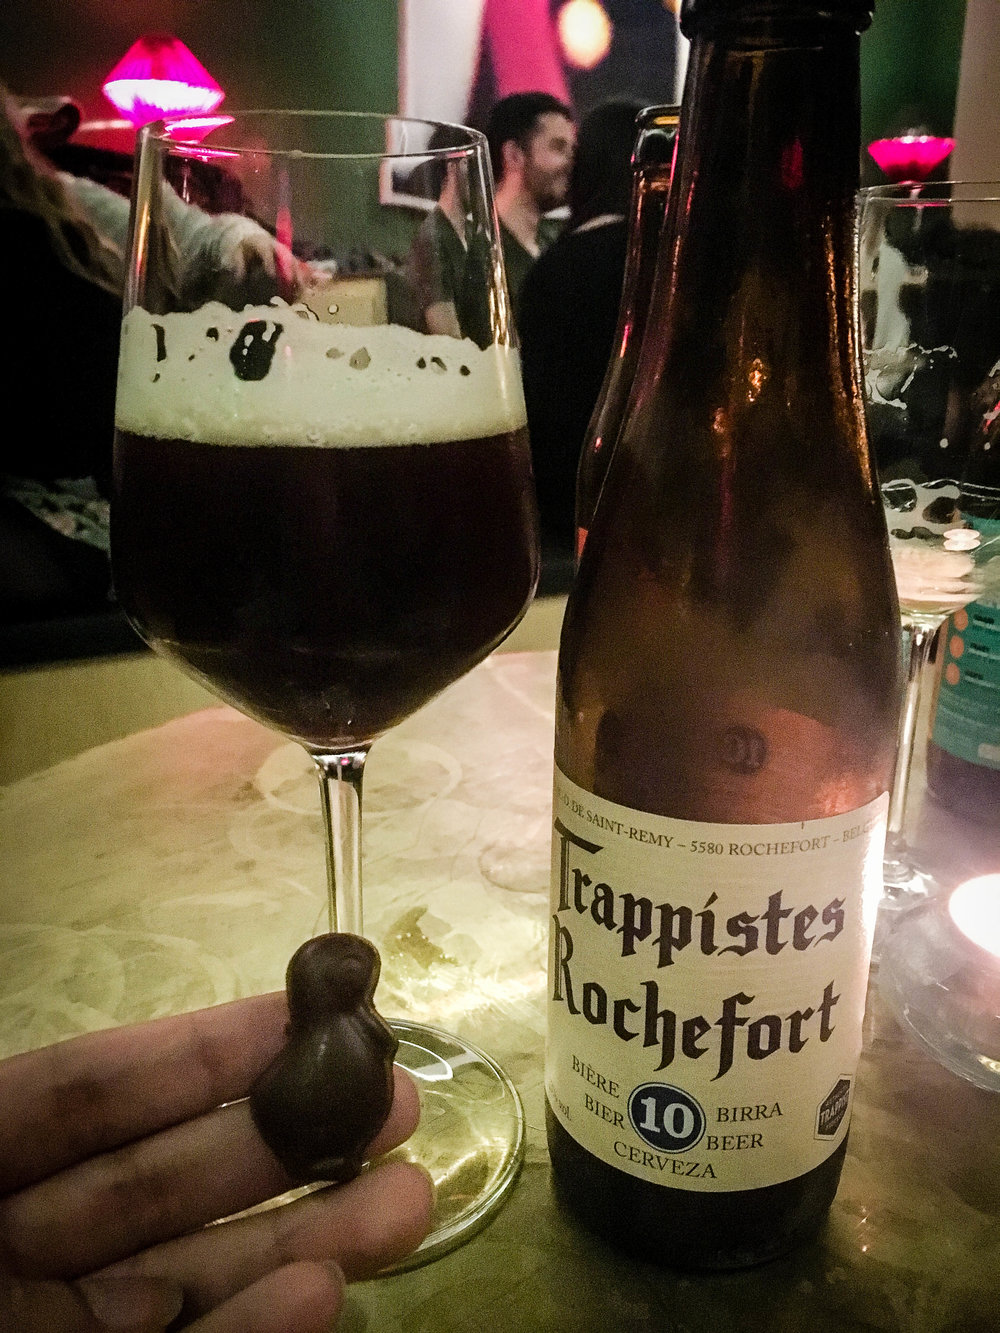 Trapiste Rochefort a Belgian beer tasting a a dark chocolate praline during our Brussels Beer and Chocolate Tour given by Brussels Journey